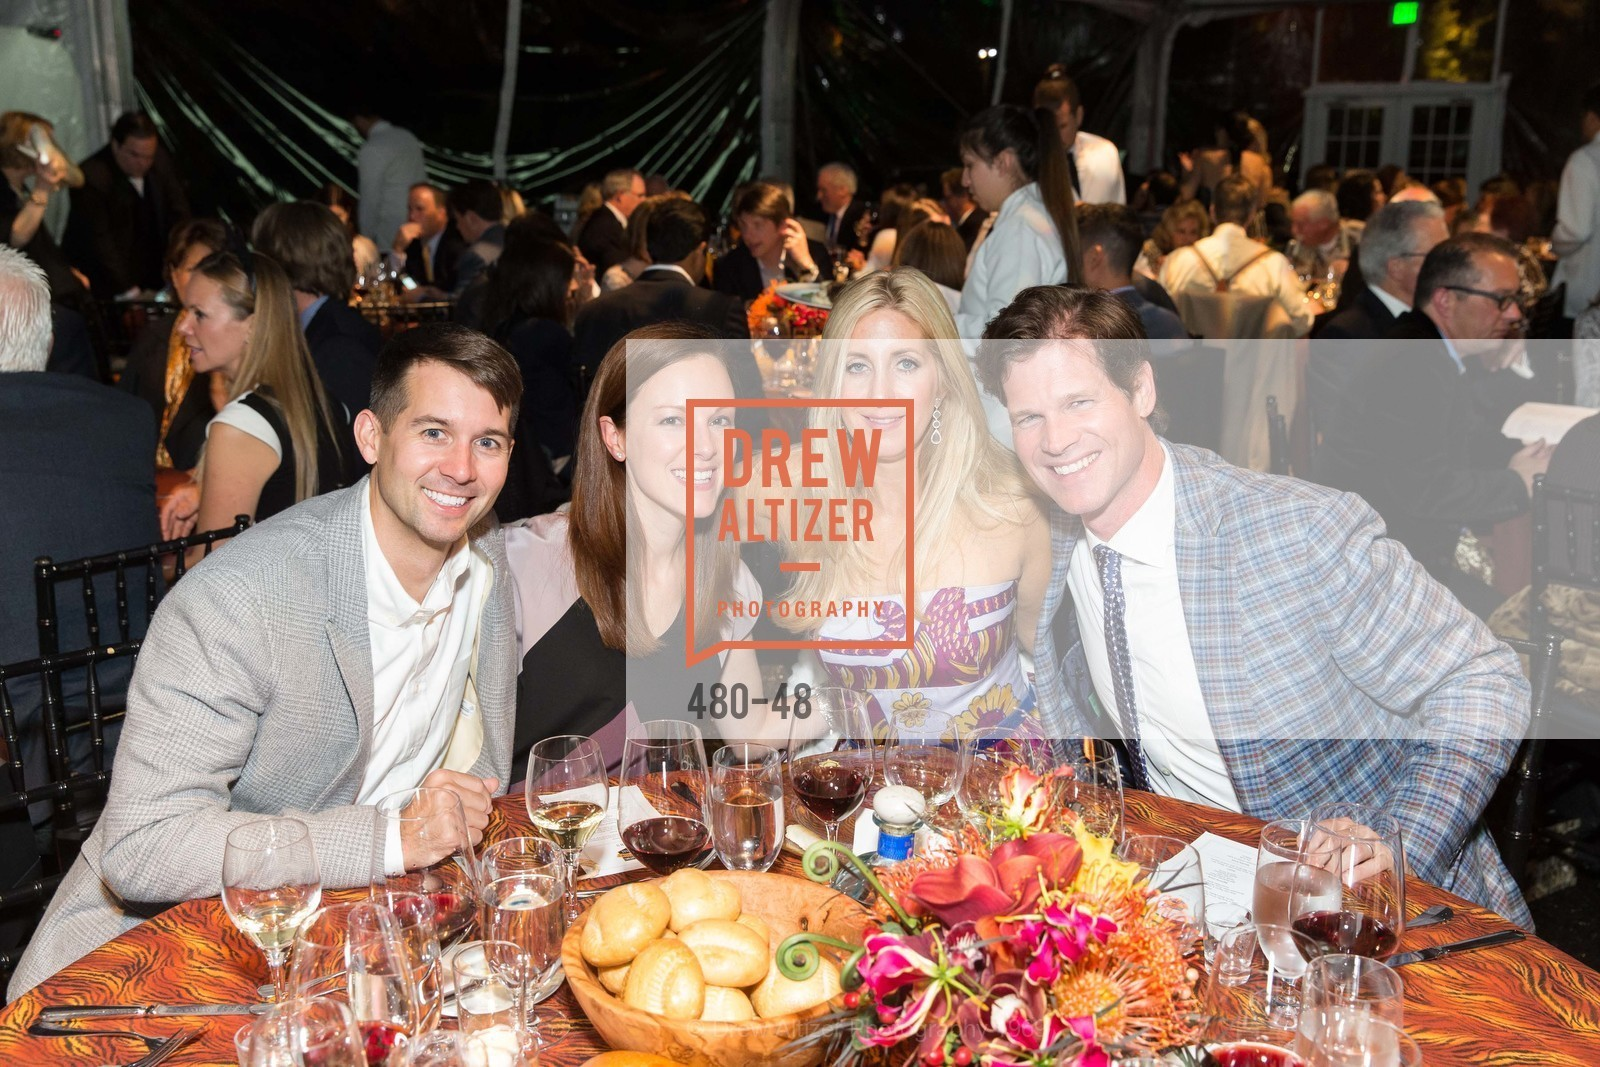 Extras, San Francisco Zoo Presents ZooFest 2015 Celebrating Champions, April 24th, 2015, Photo,Drew Altizer, Drew Altizer Photography, full-service agency, private events, San Francisco photographer, photographer california